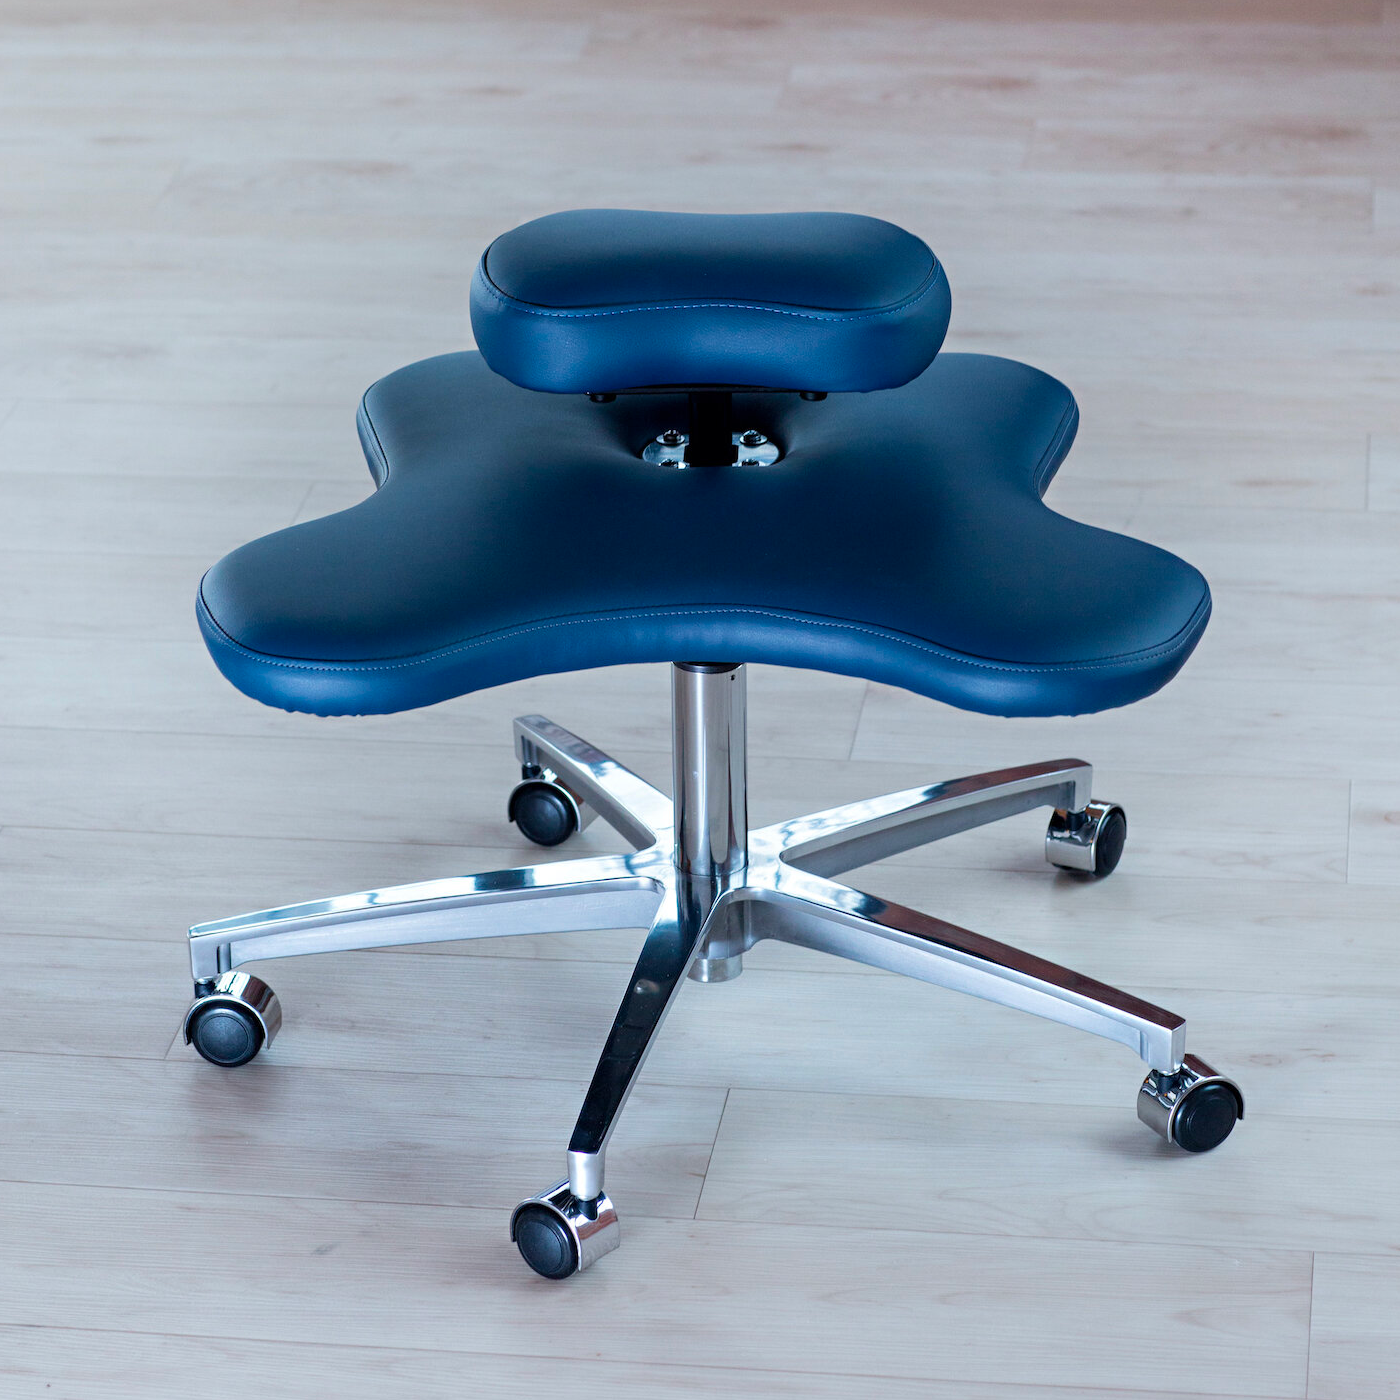 An image of a Soul Seat by Ikaria Design on a hard floor